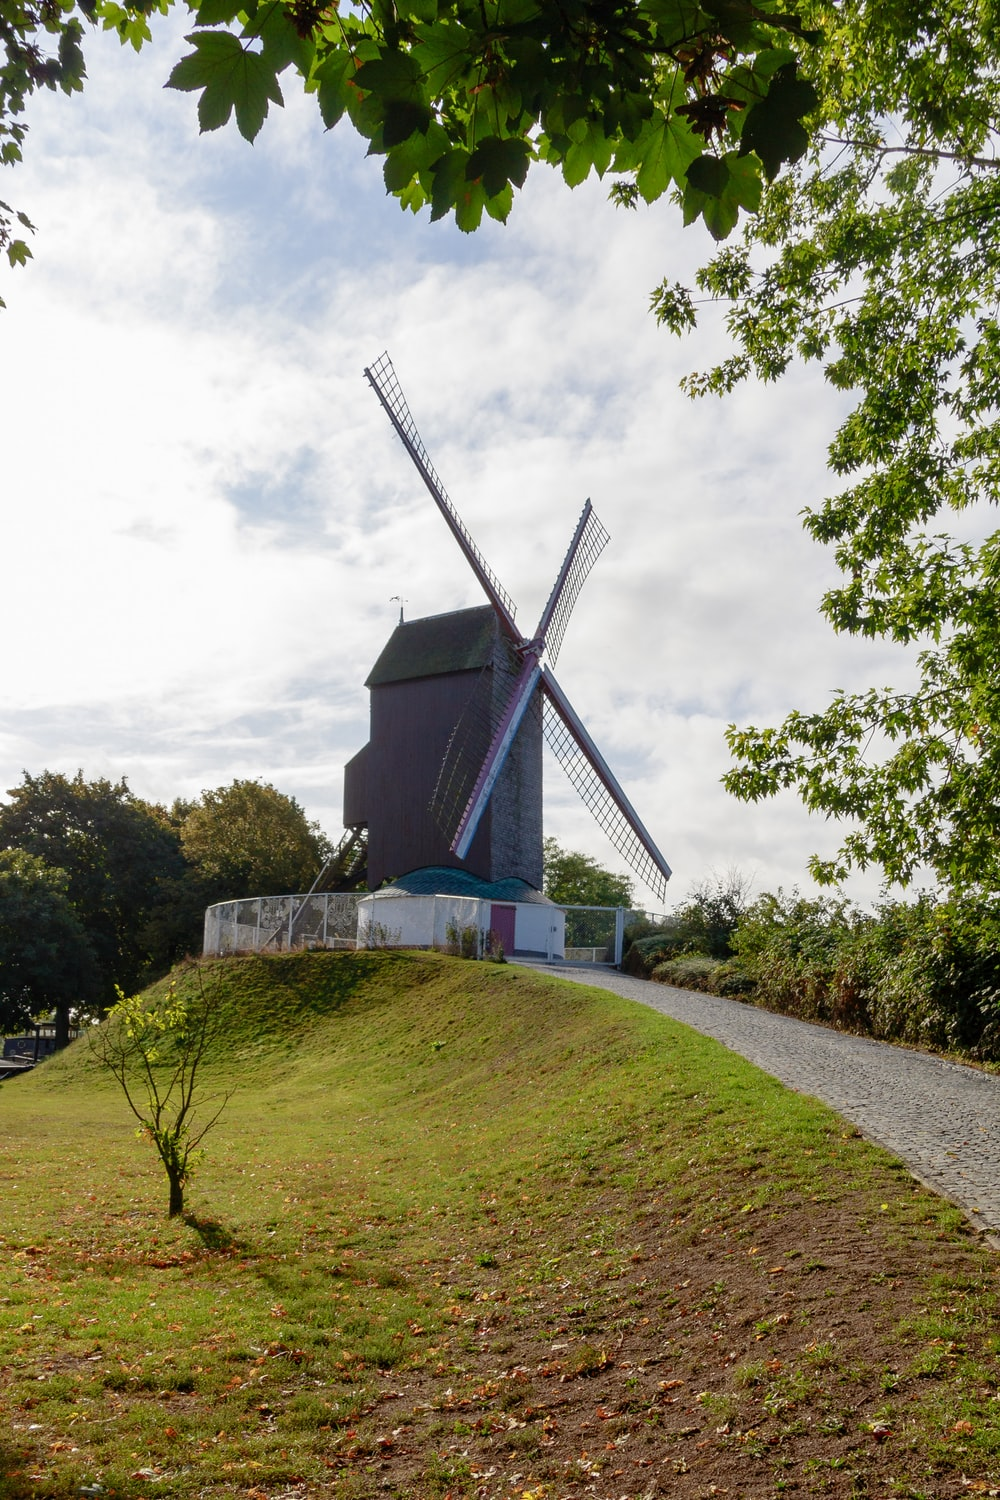 windmill building beside road and near trees during day